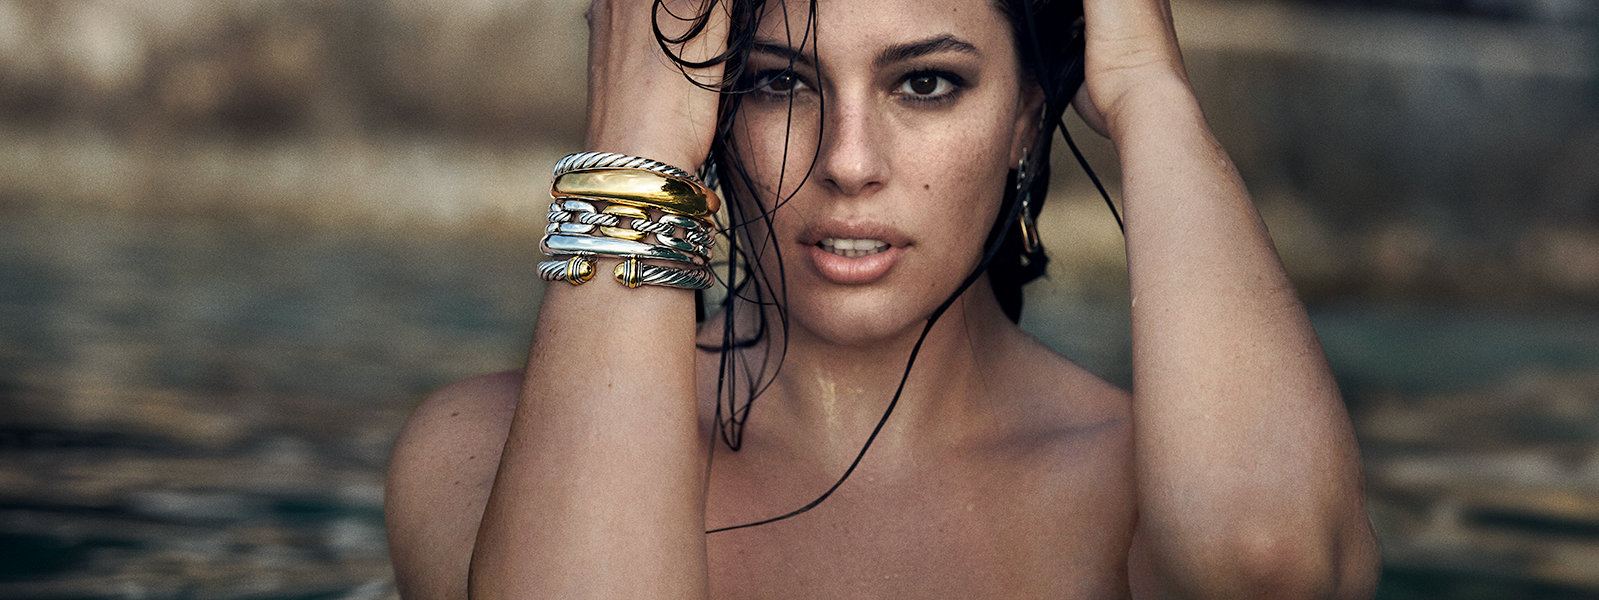 Model Ashley Graham half submerged in water wearing David Yurman Pure Form® bracelets in sterling silver and 18K yellow gold, and Wellesley Link™ and The Cable Collection bracelets in sterling silver with 18K yellow gold.